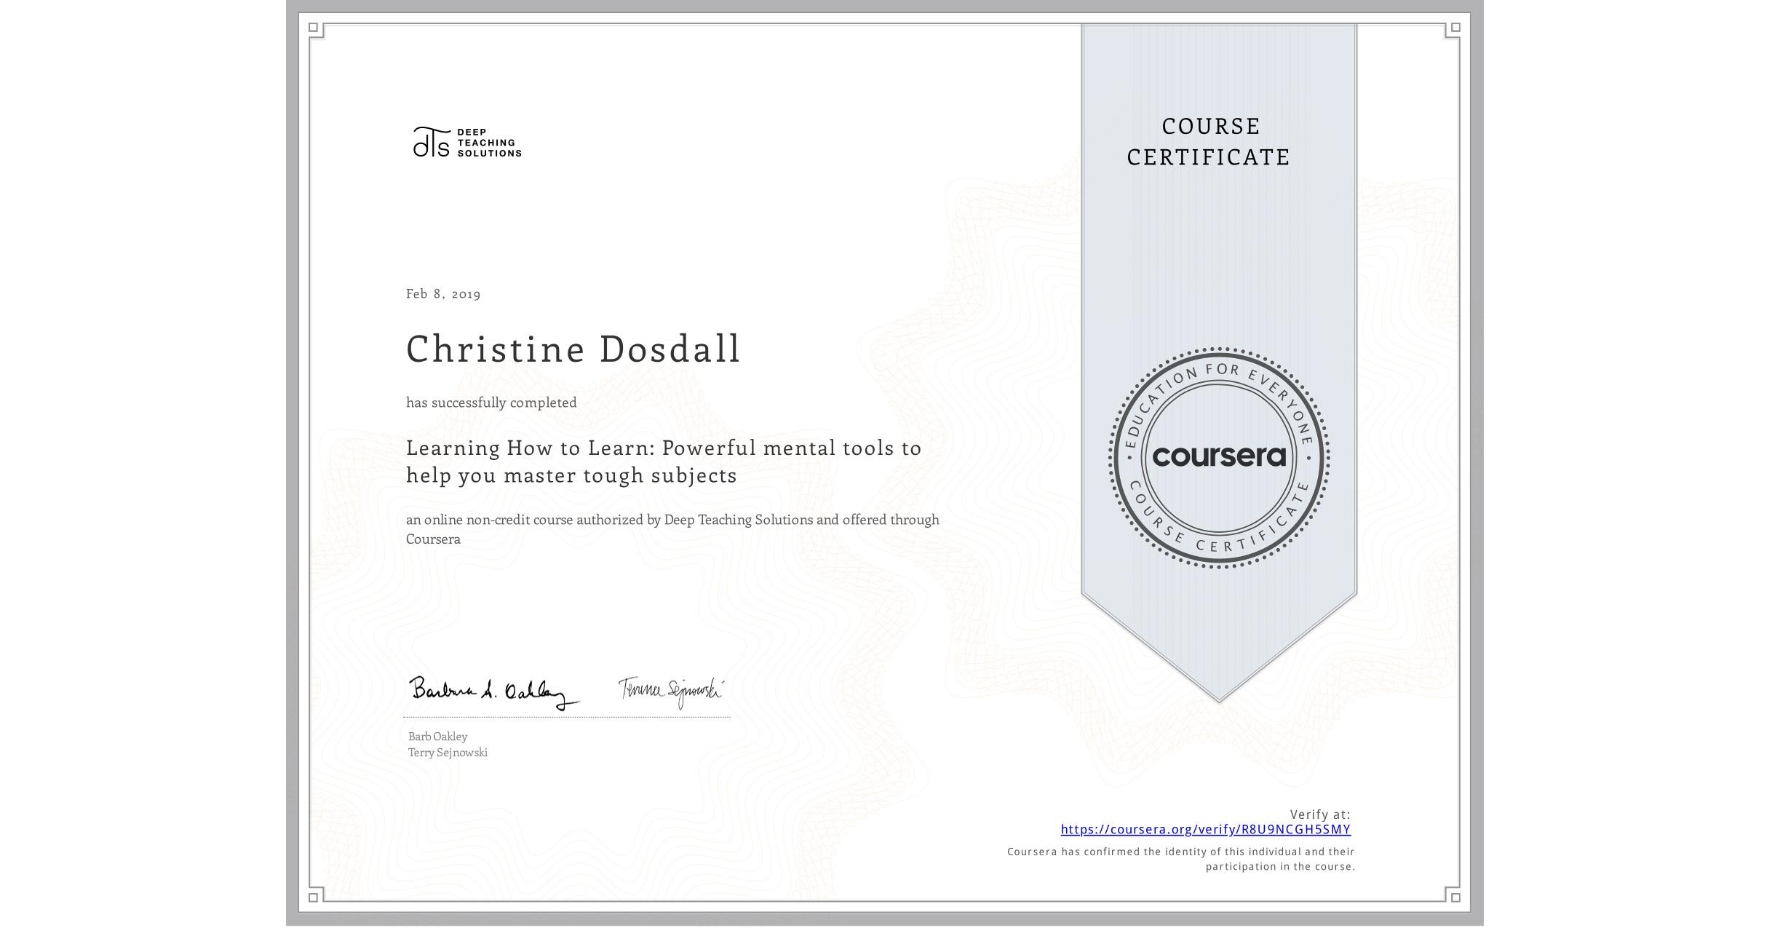 View certificate for Christine Dosdall, Learning How to Learn: Powerful mental tools to help you master tough subjects, an online non-credit course authorized by McMaster University & University of California San Diego and offered through Coursera